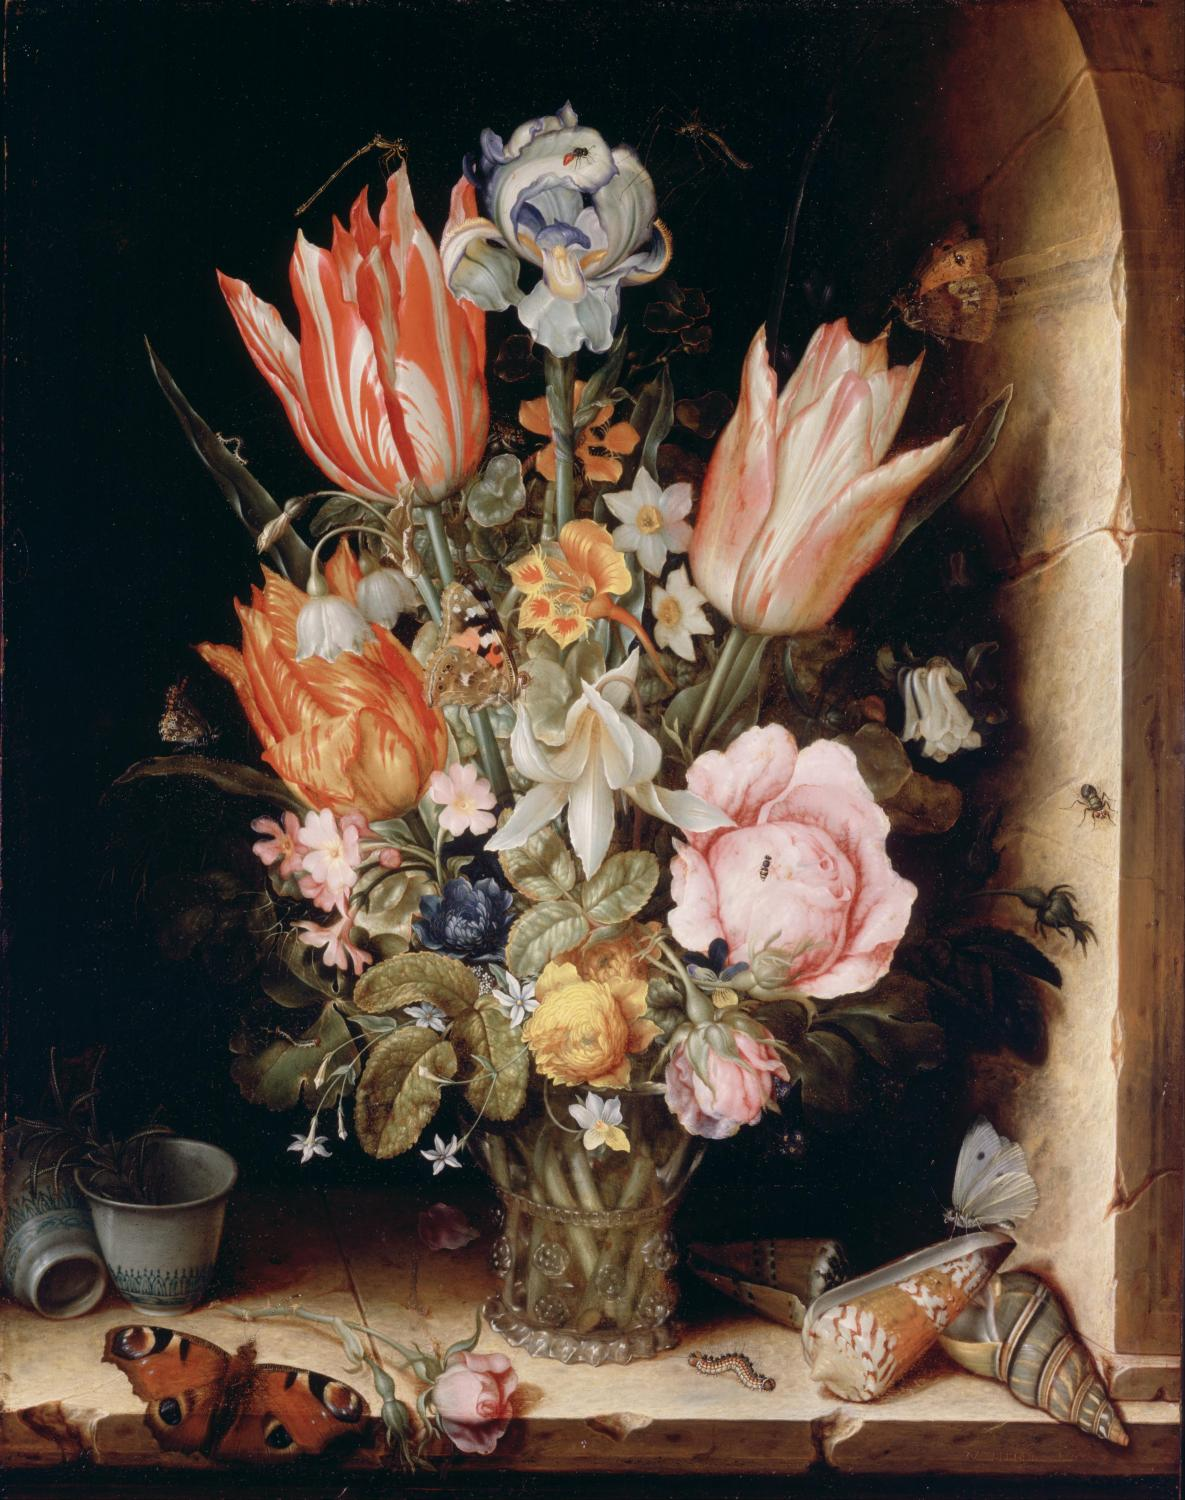 Christoffel van den Berghe, Still Life with Flowers in a Vase, Philadelphia Museum of Art, 1617. Image and artwork in public domain.